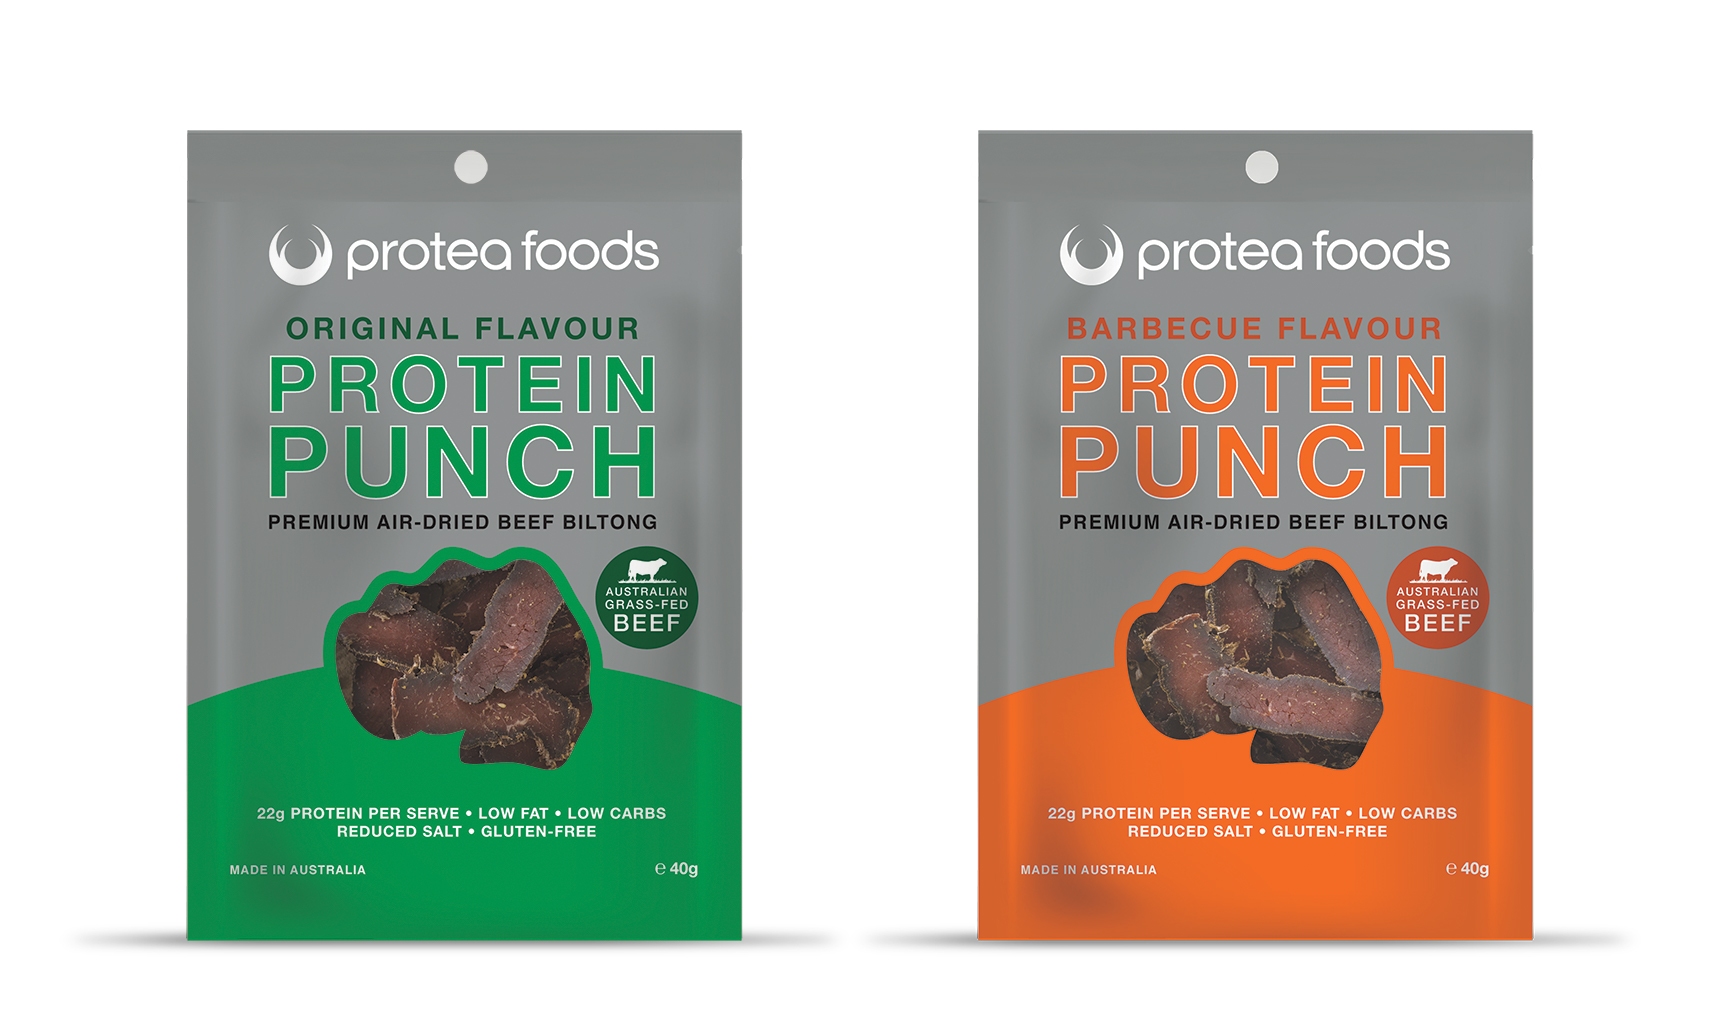 Protea Foods Protein Punch comes in two great flavours: Original and Barbecue